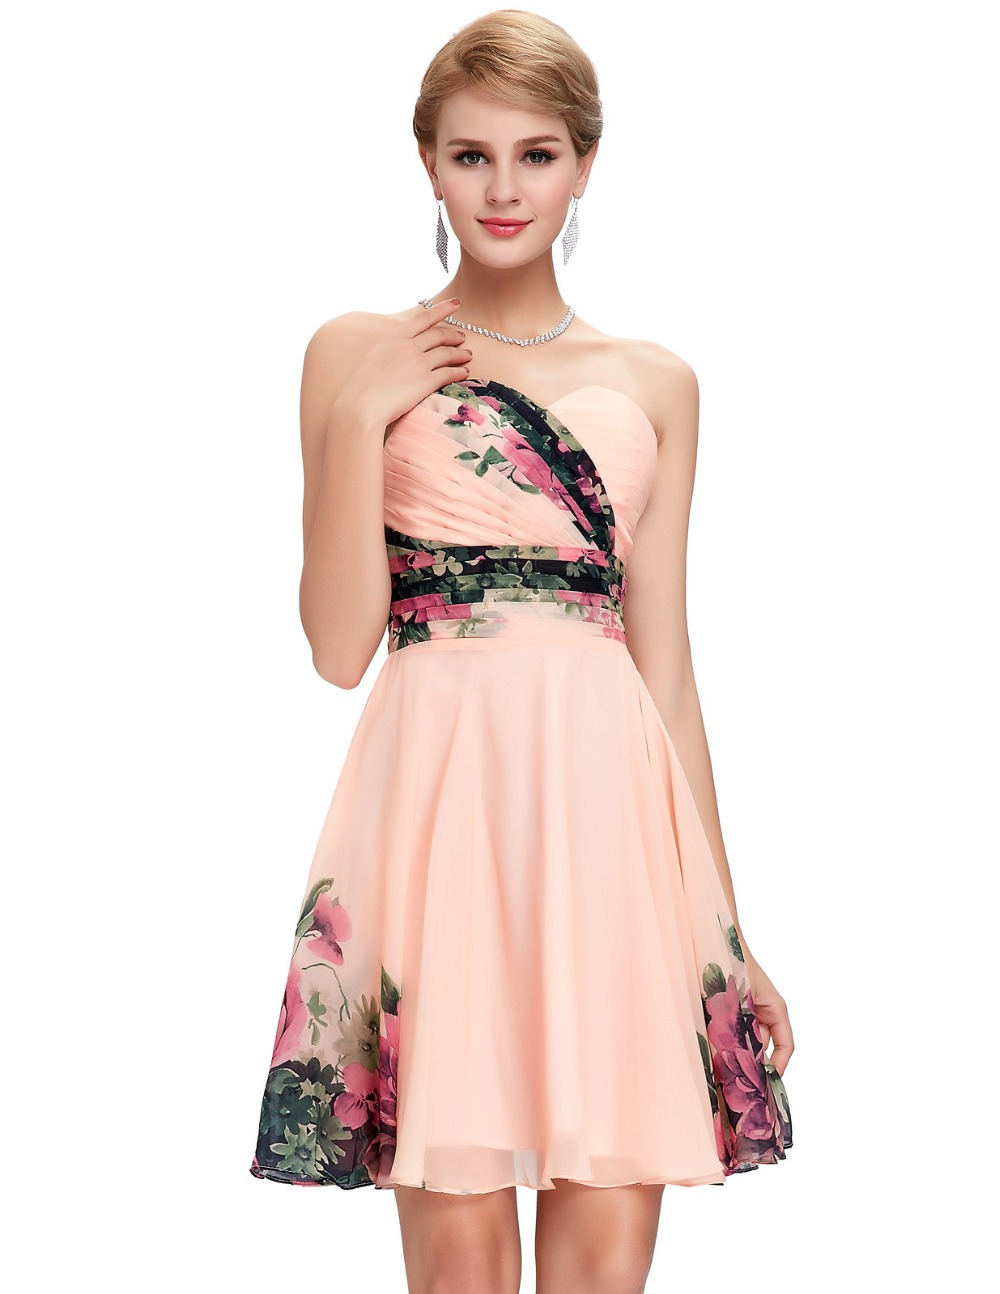 fc7eb2d3e64 Freeshipping 2015 New Sexy Women Floral Print dress Runway Vintage Party  Gown Short Pattern Evening Prom ...